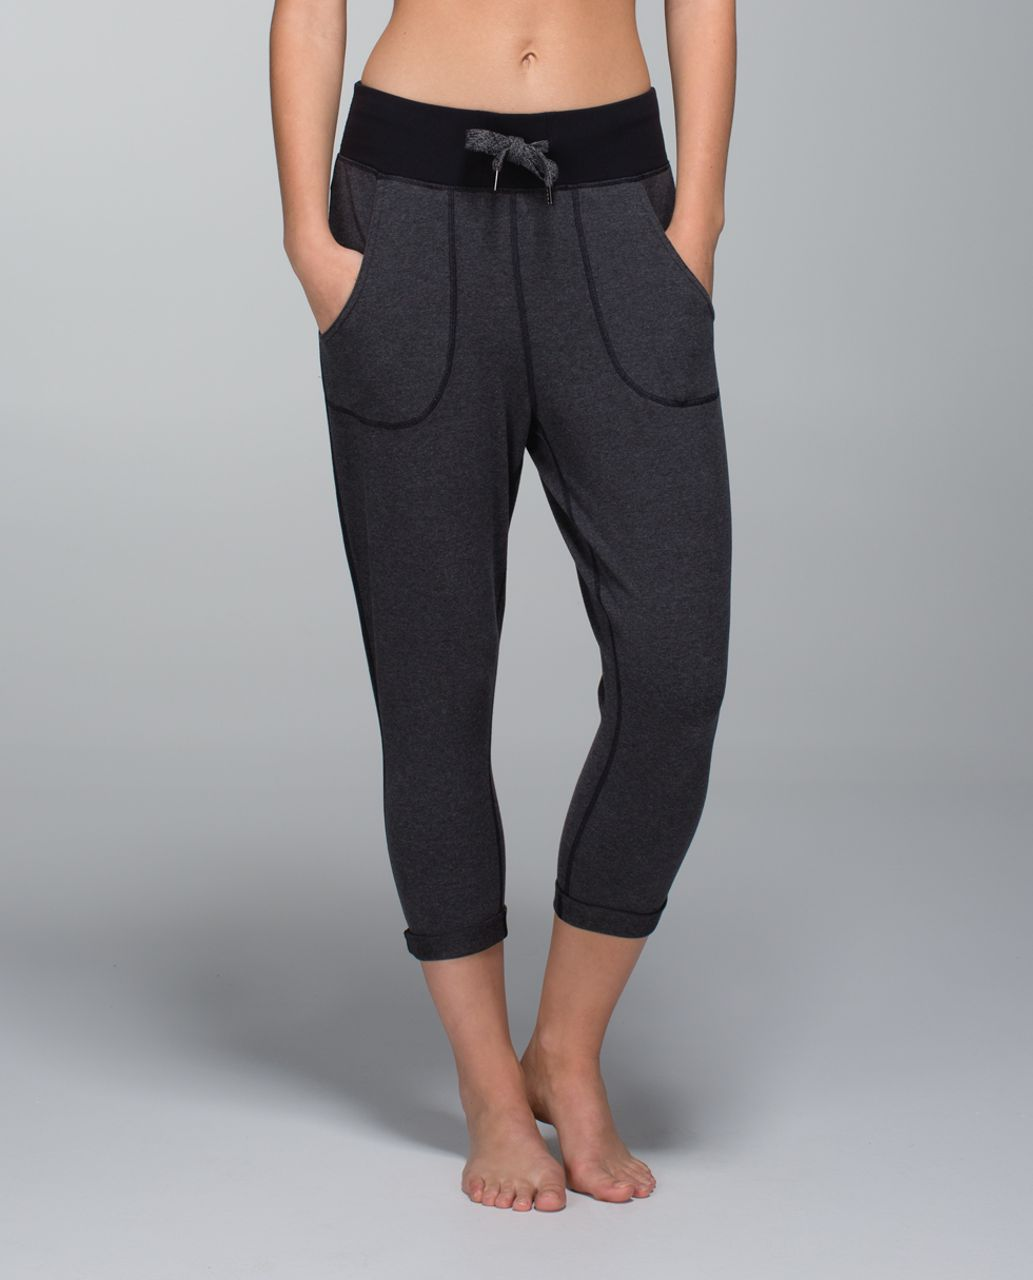 8fb86025d5 Lululemon Free Fall Crop - Heathered Black - lulu fanatics